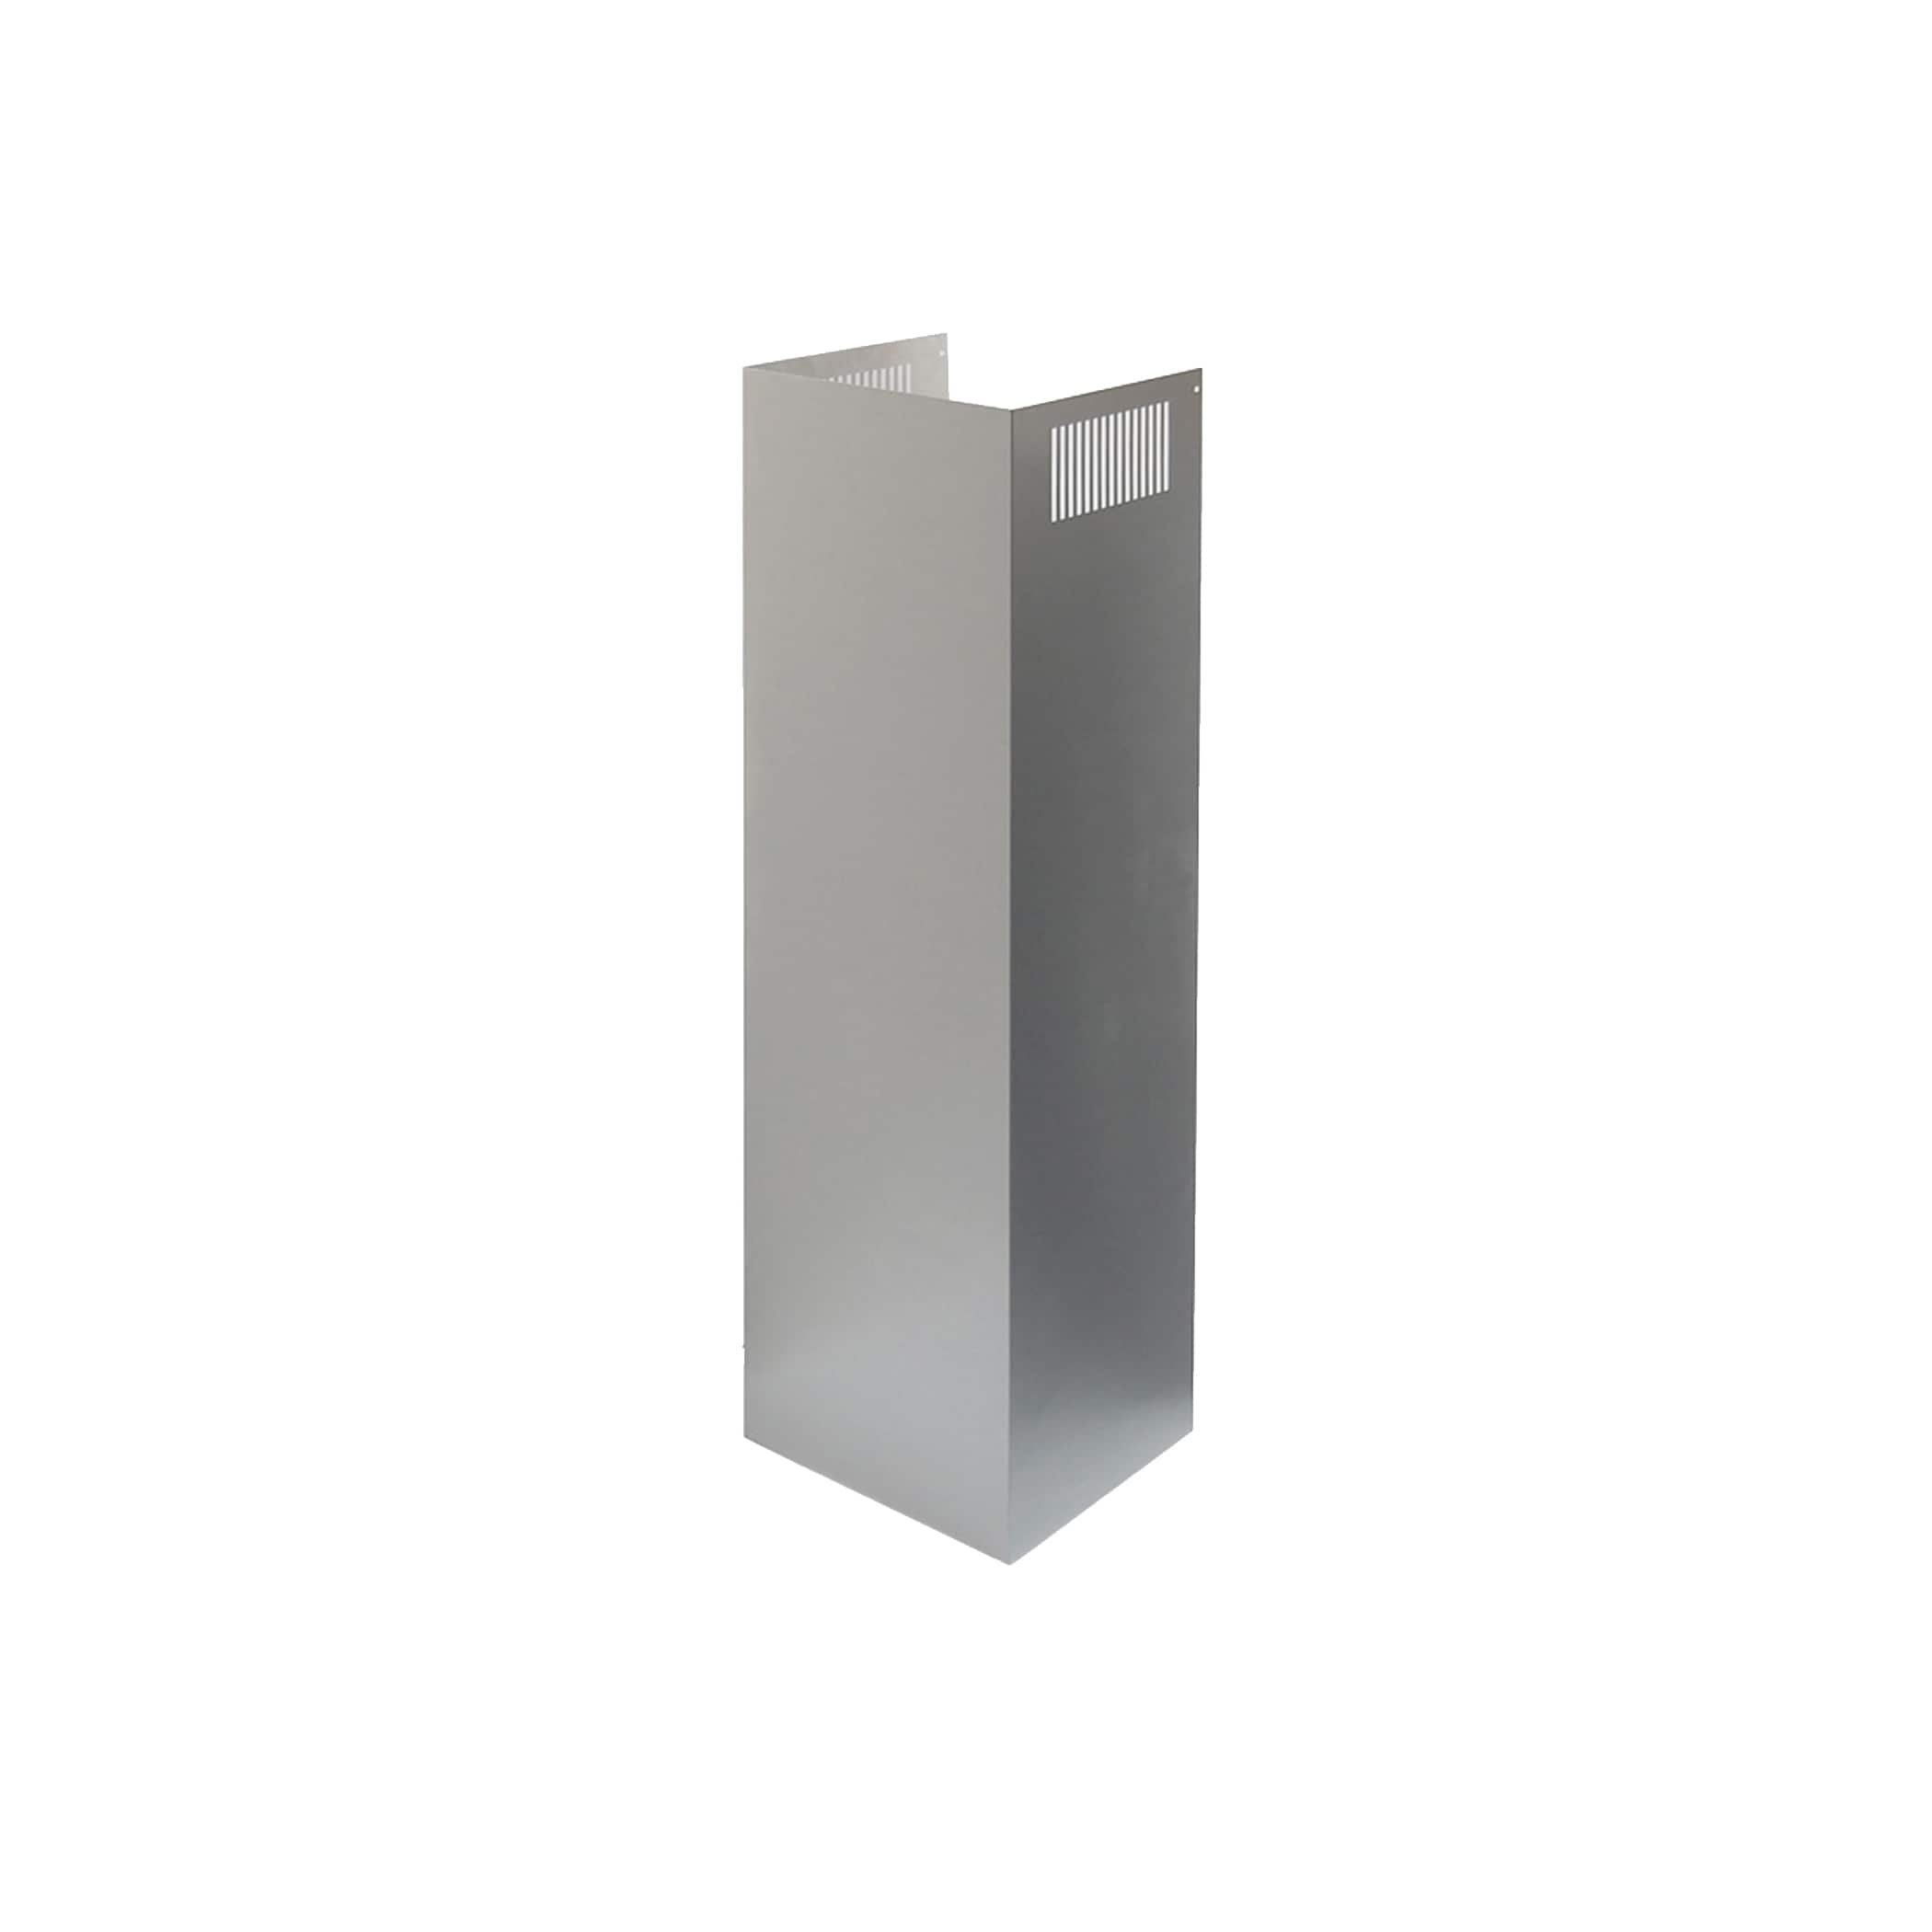 Windster Hood RA-77EXTDC Optional Extension Duct Cover for RA-77 Series Range Hood